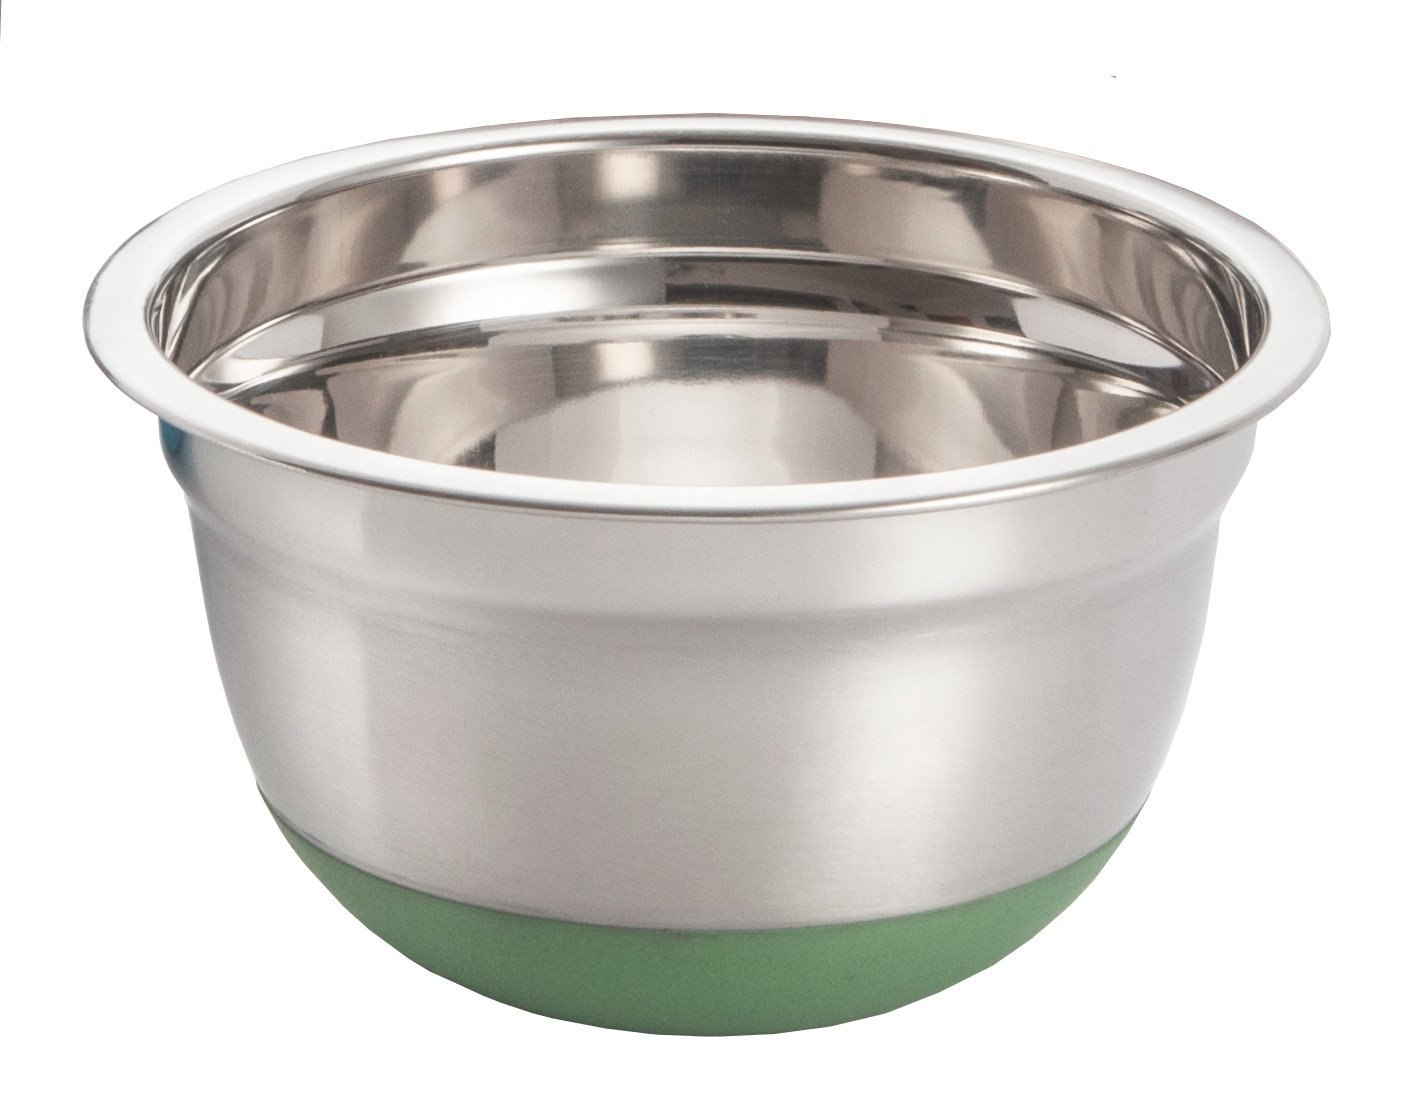 ExcelSteel 296 1.5-Quart Stainless Steel Non Skid Base Mixing Bowl